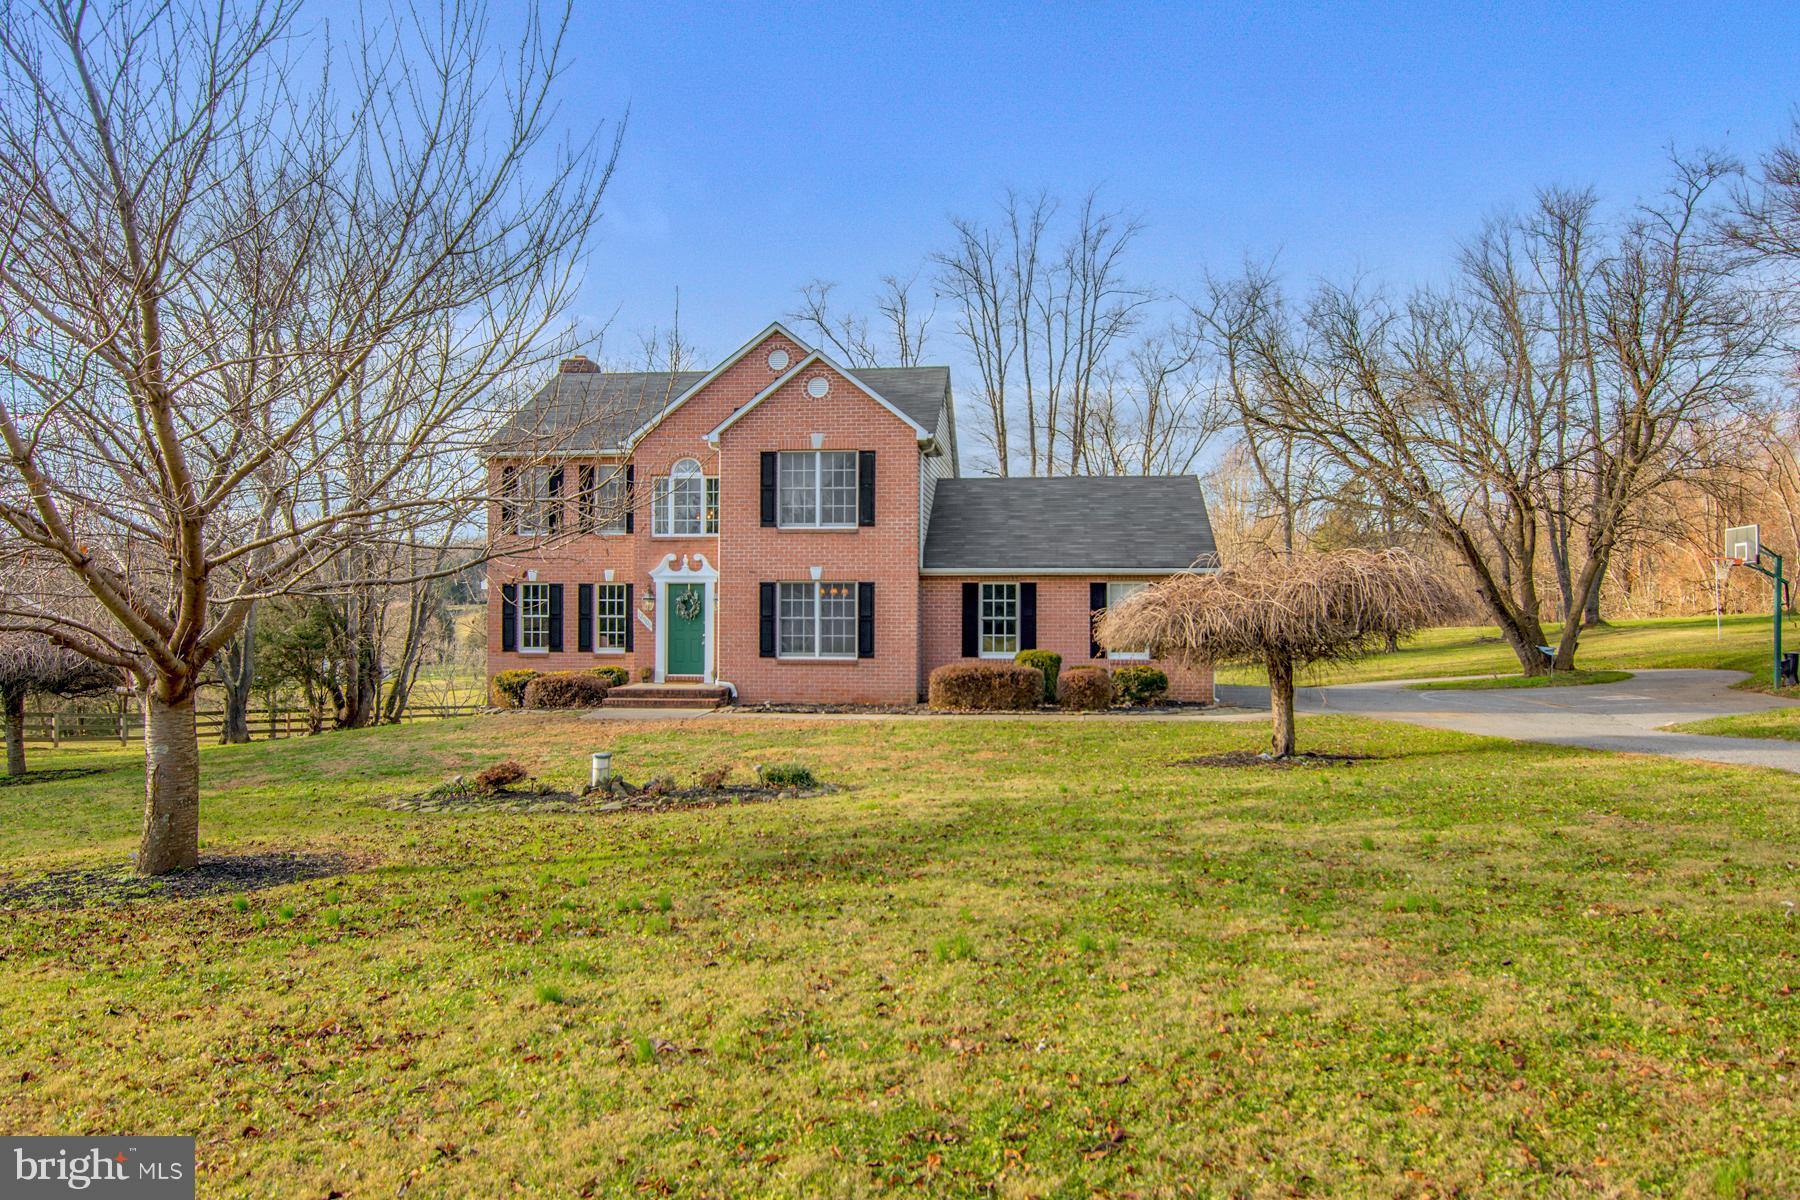 12906 DULANEY VALLEY ROAD, GLEN ARM, MD 21057